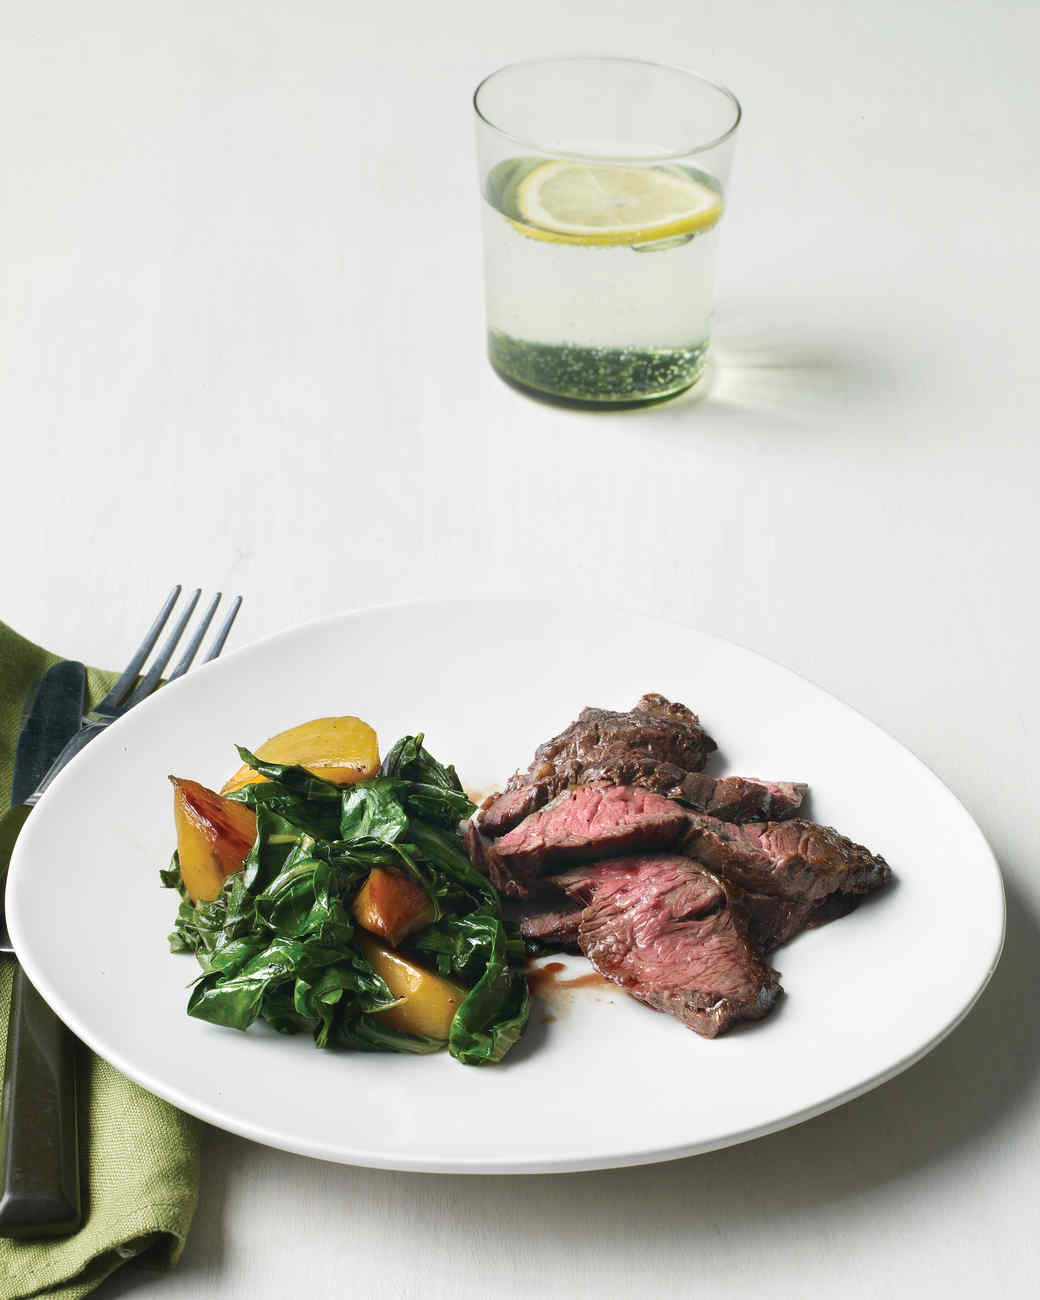 Skirt Steak with Beets and Greens